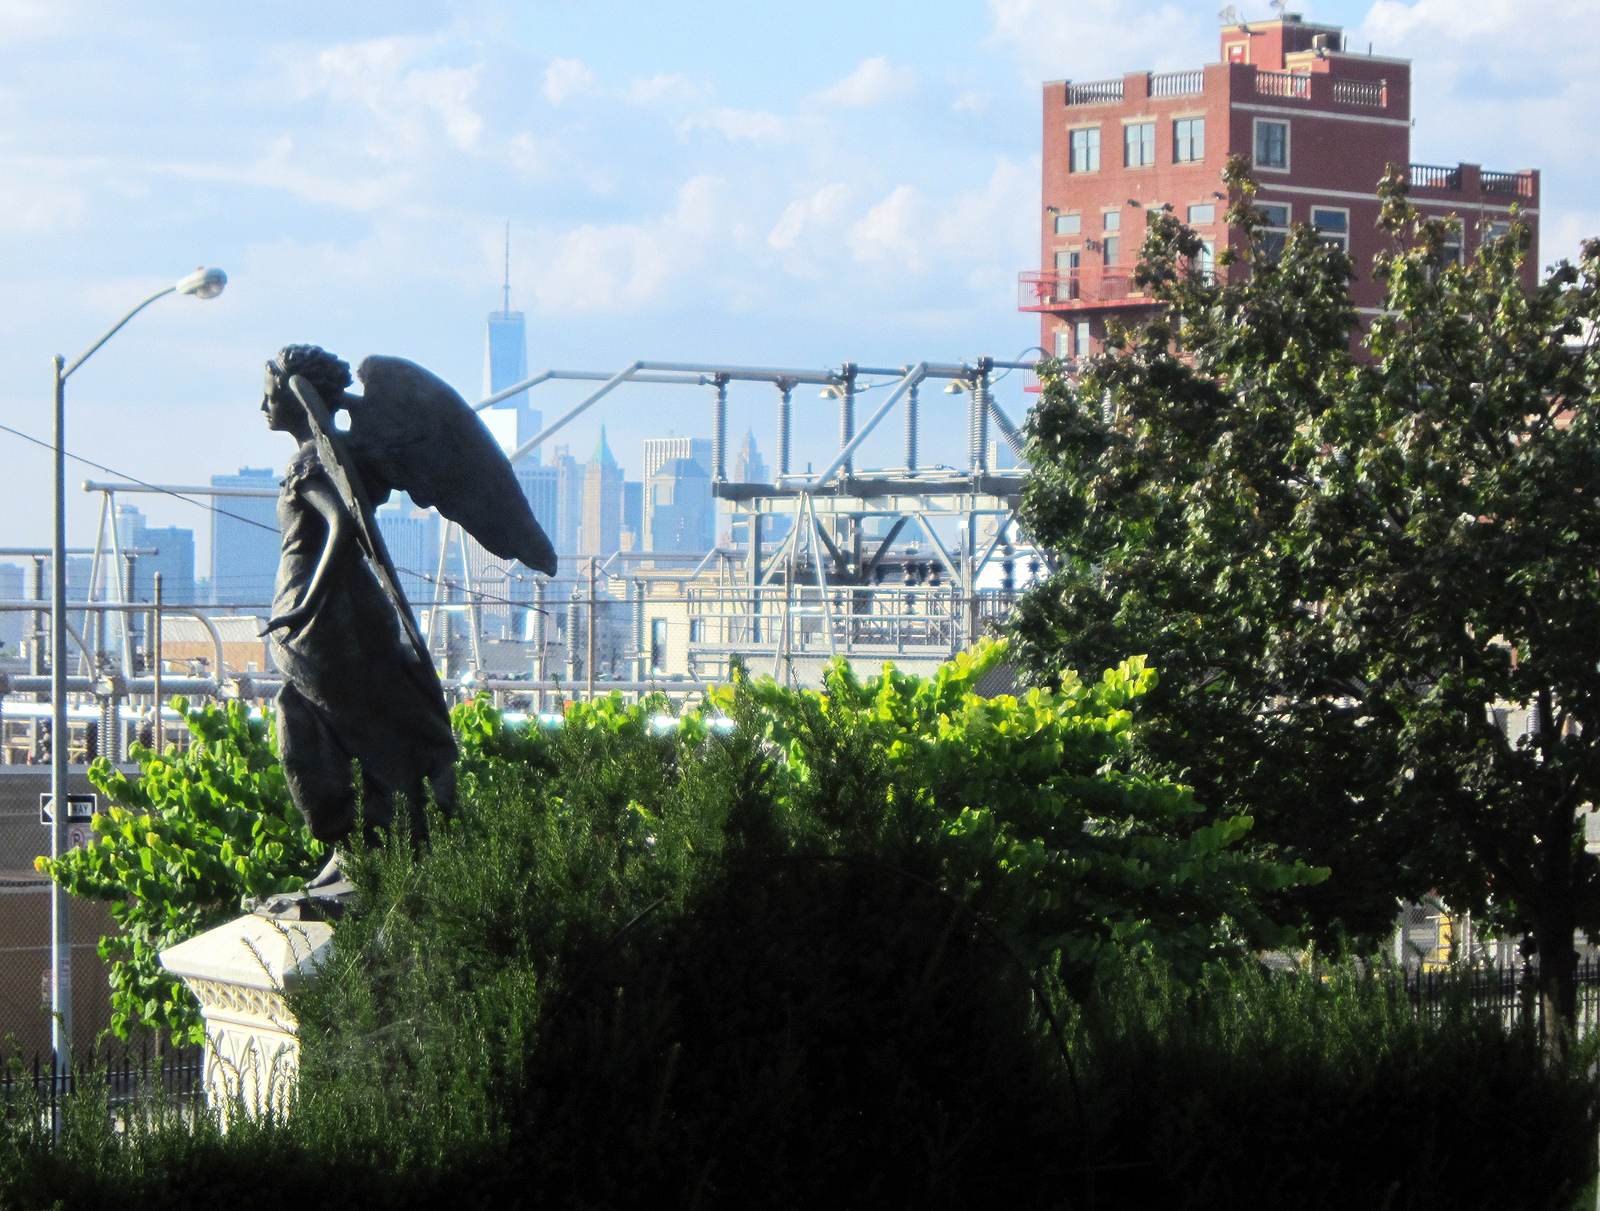 Angel in Green-Wood Cemetery, one of the sites that may be removed from Landmarks Preservation Commission consideration (all photographs by the author)